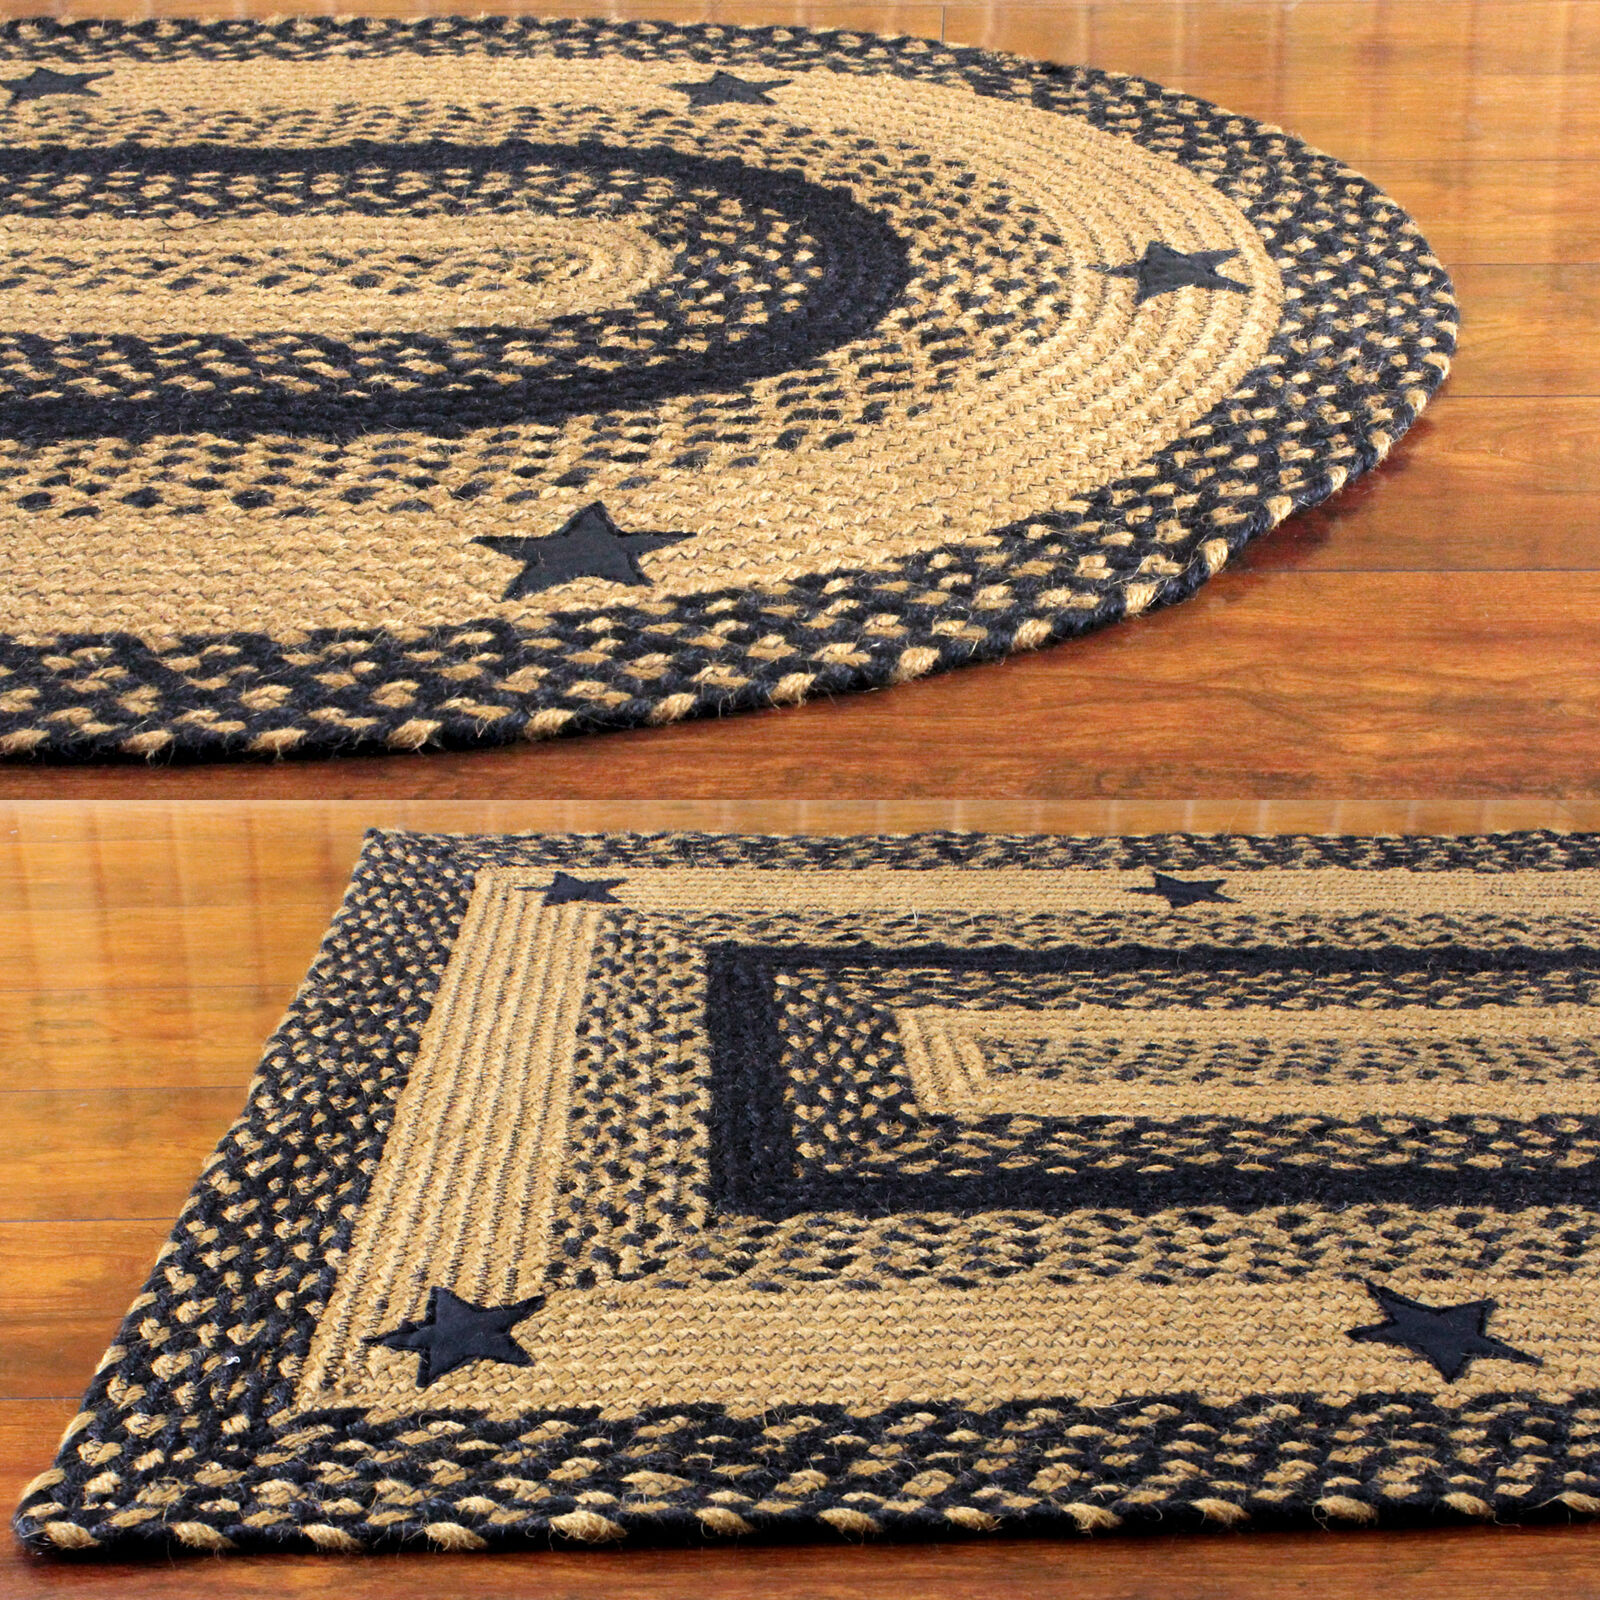 Star Jute Braided Rugs By Ihf